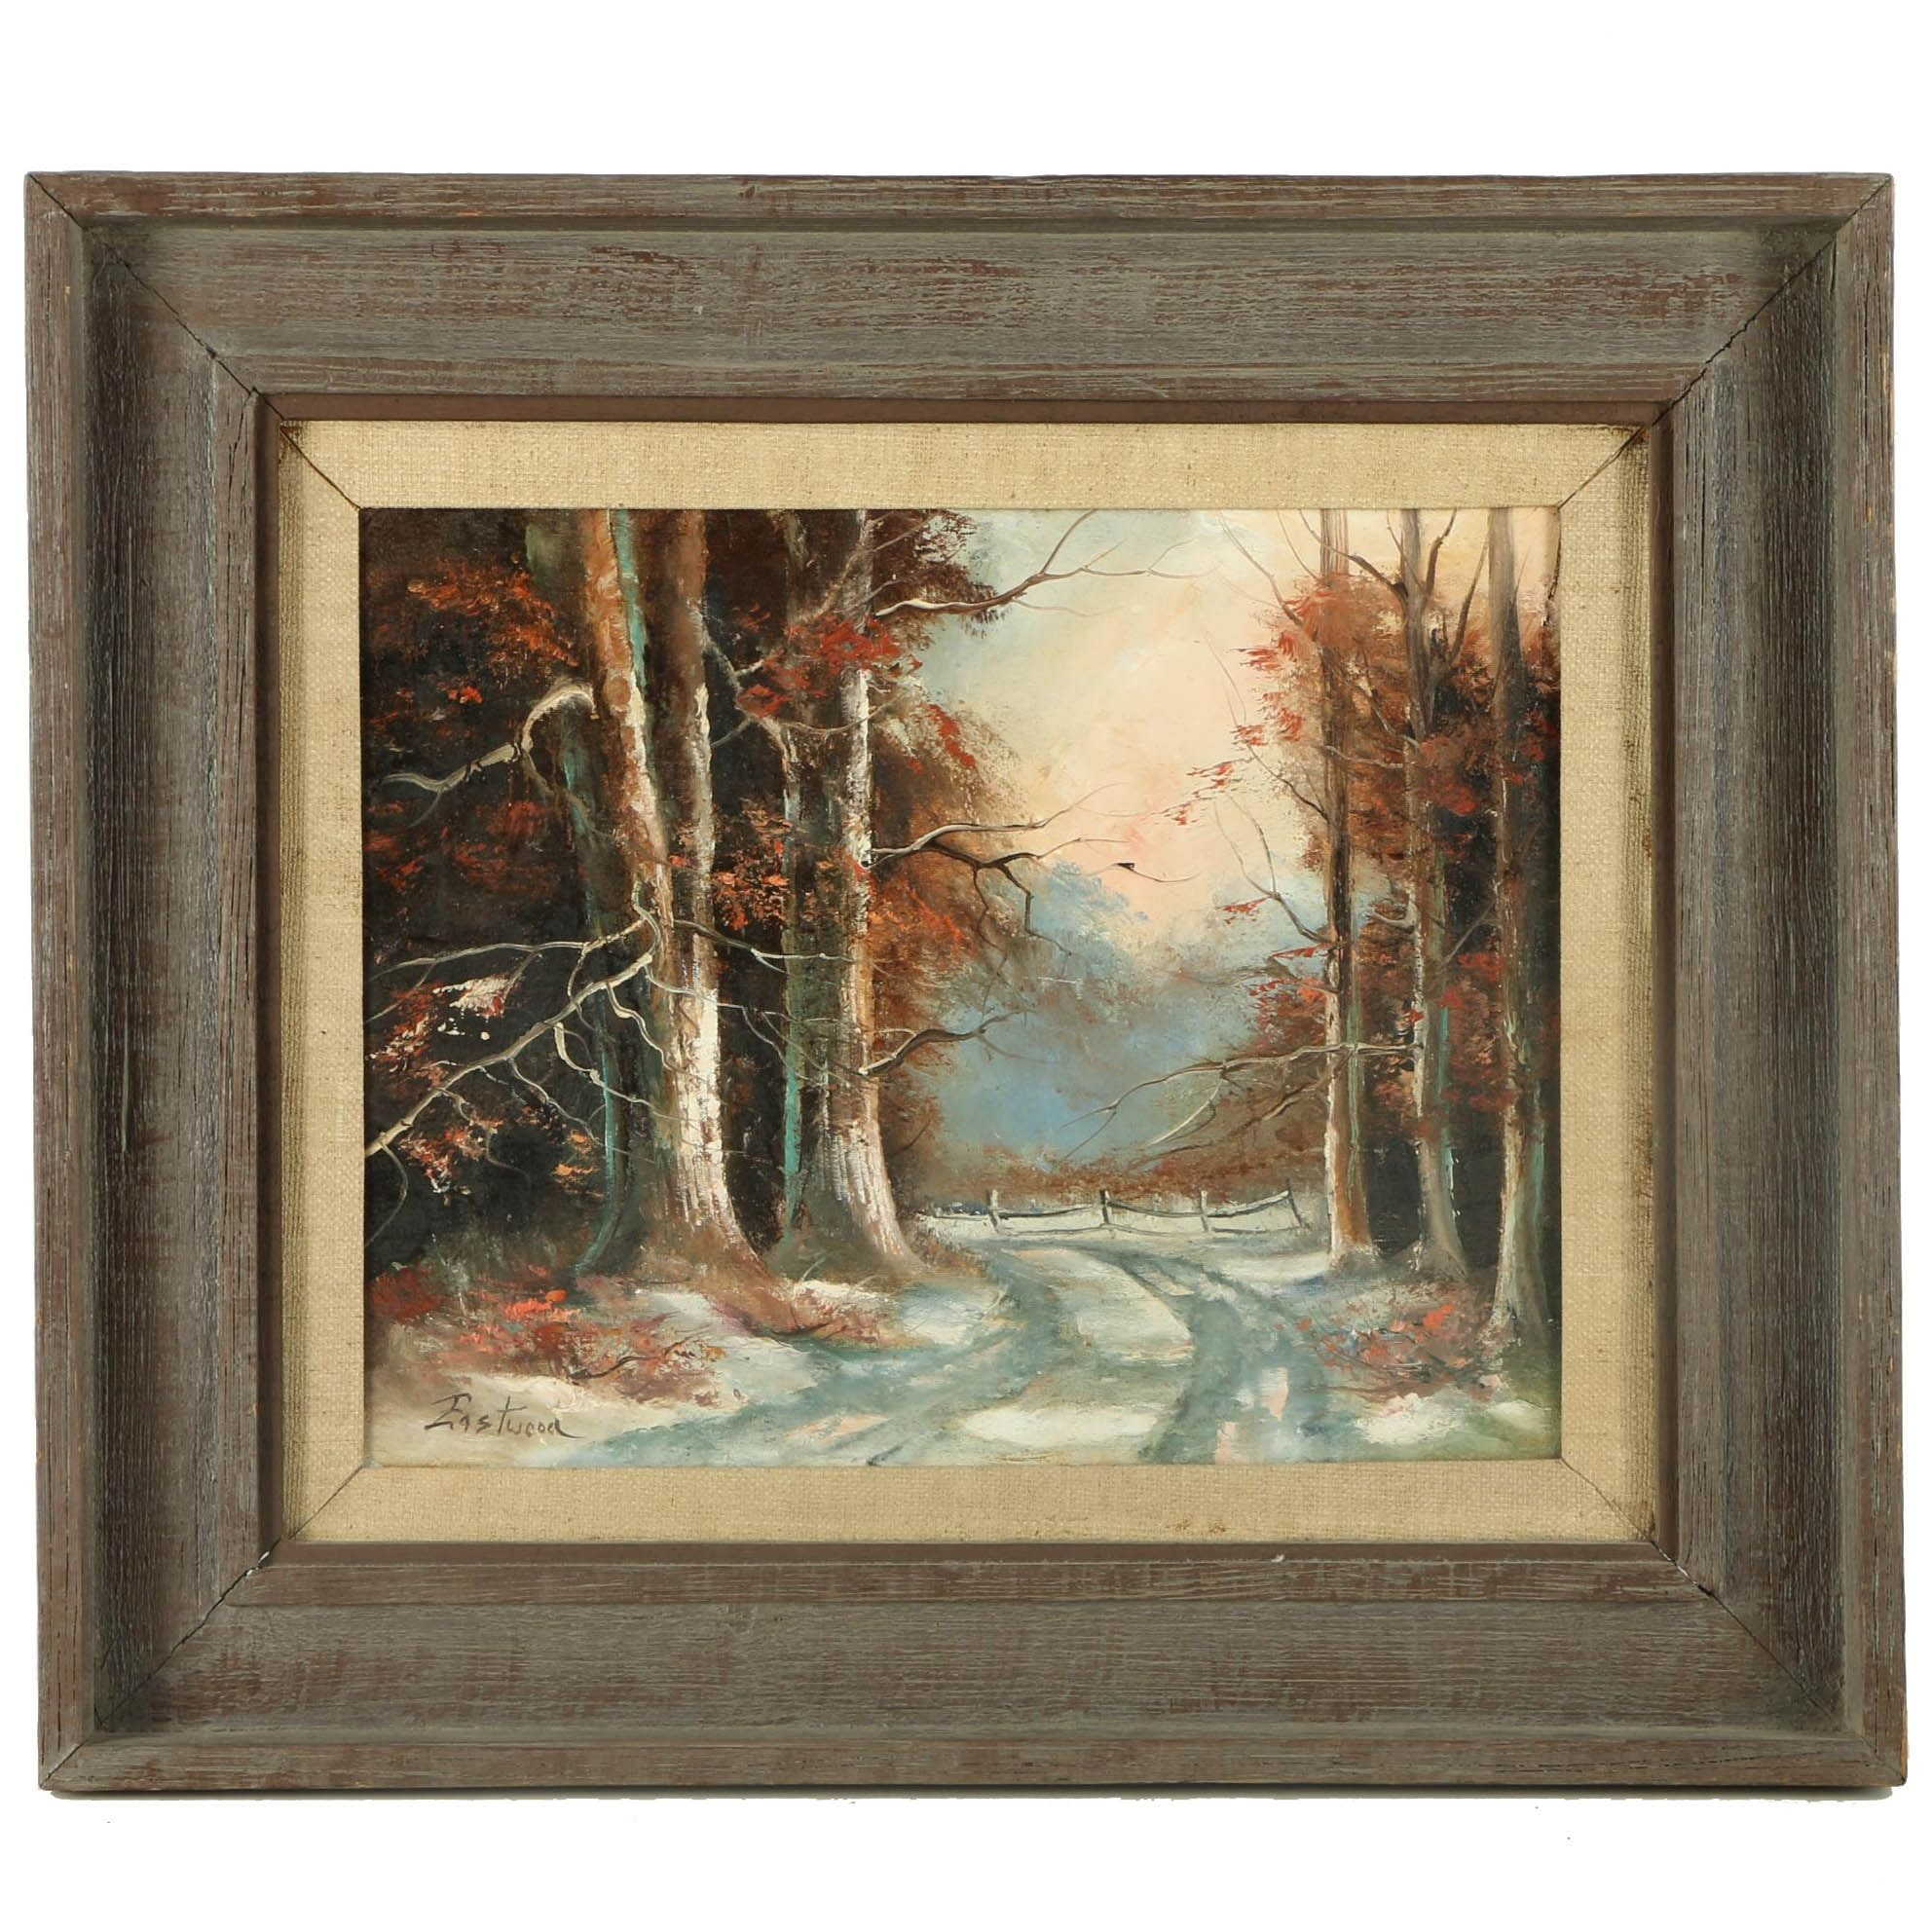 Eastwood Oil Painting on Canvas of a Wintry Wooded Landscape